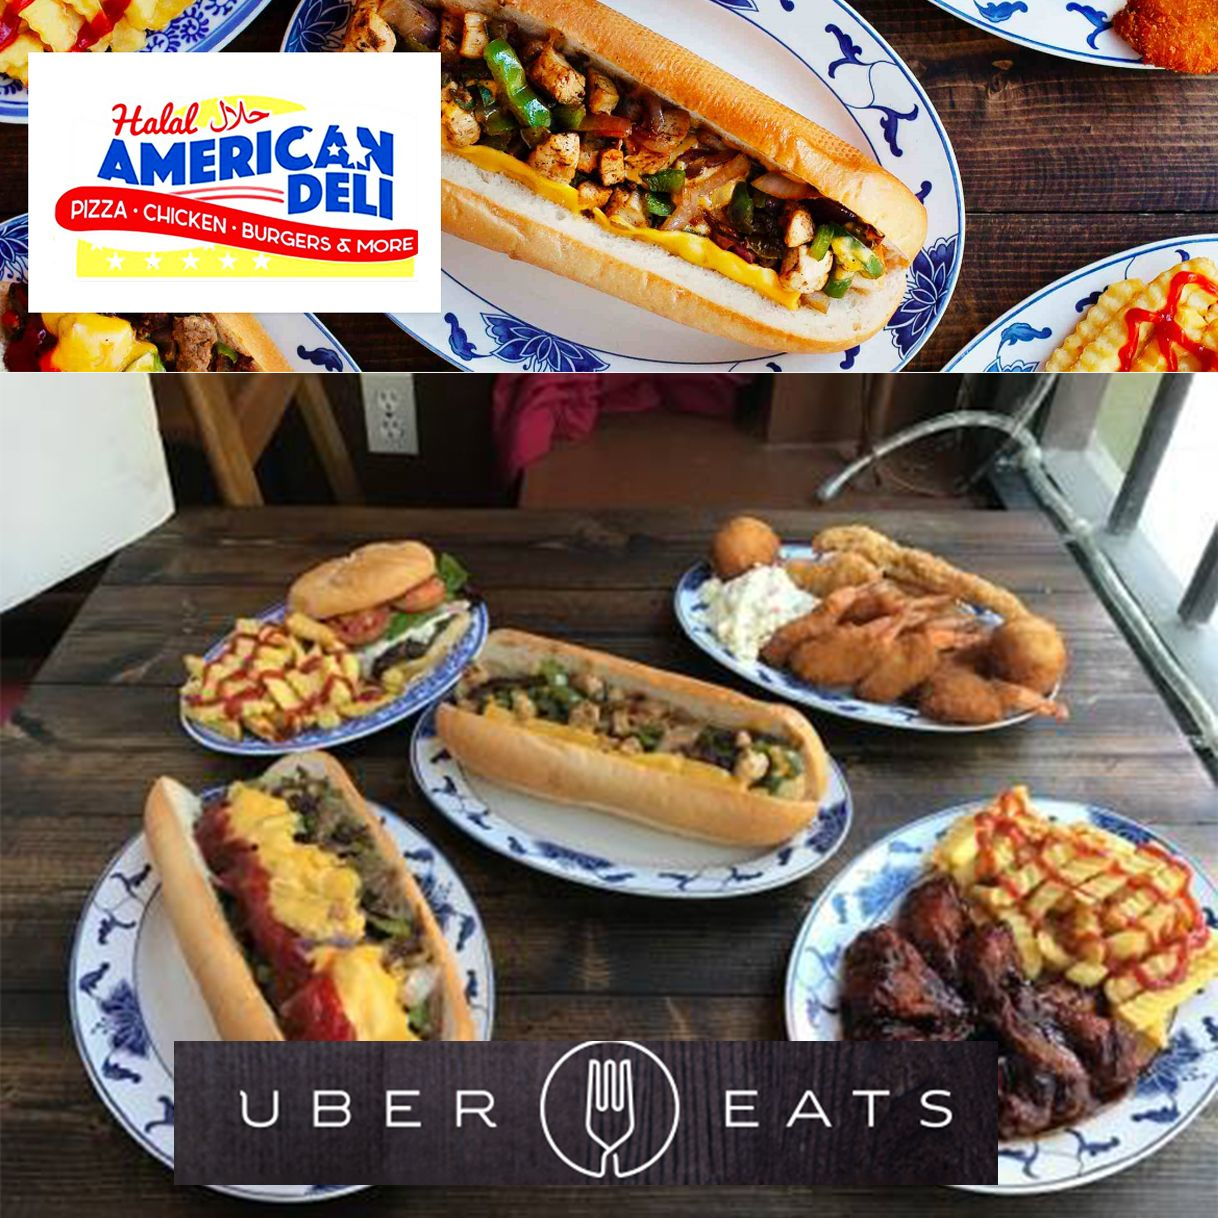 Check Us Out On Uber Eats Halal American Deli Hours Of Operation Mon Thurs 11am 10pm Friday 3pm 11pm Saturday 11am 11 Eat Burgers And More Chicken Burgers